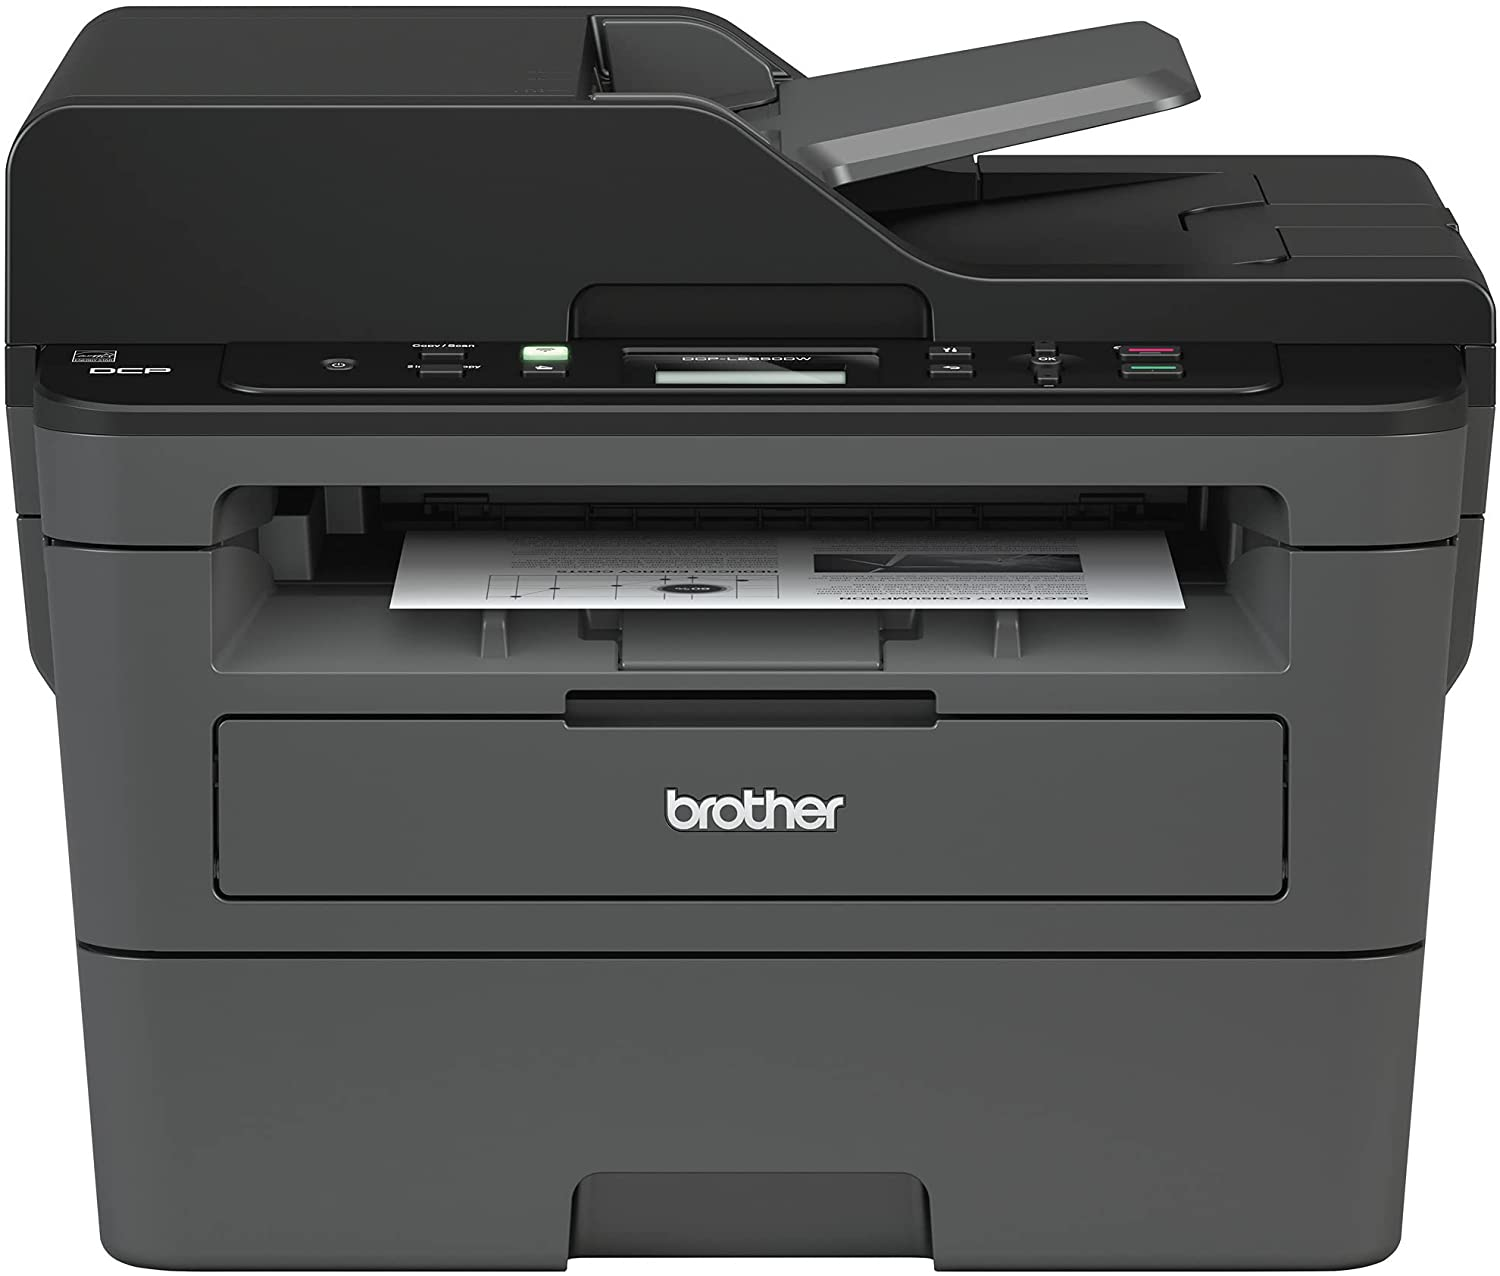 Brother DCP-L2550 All-in-One Wireless Detroit Mall Printer Monochrome Laser f Outlet ☆ Free Shipping